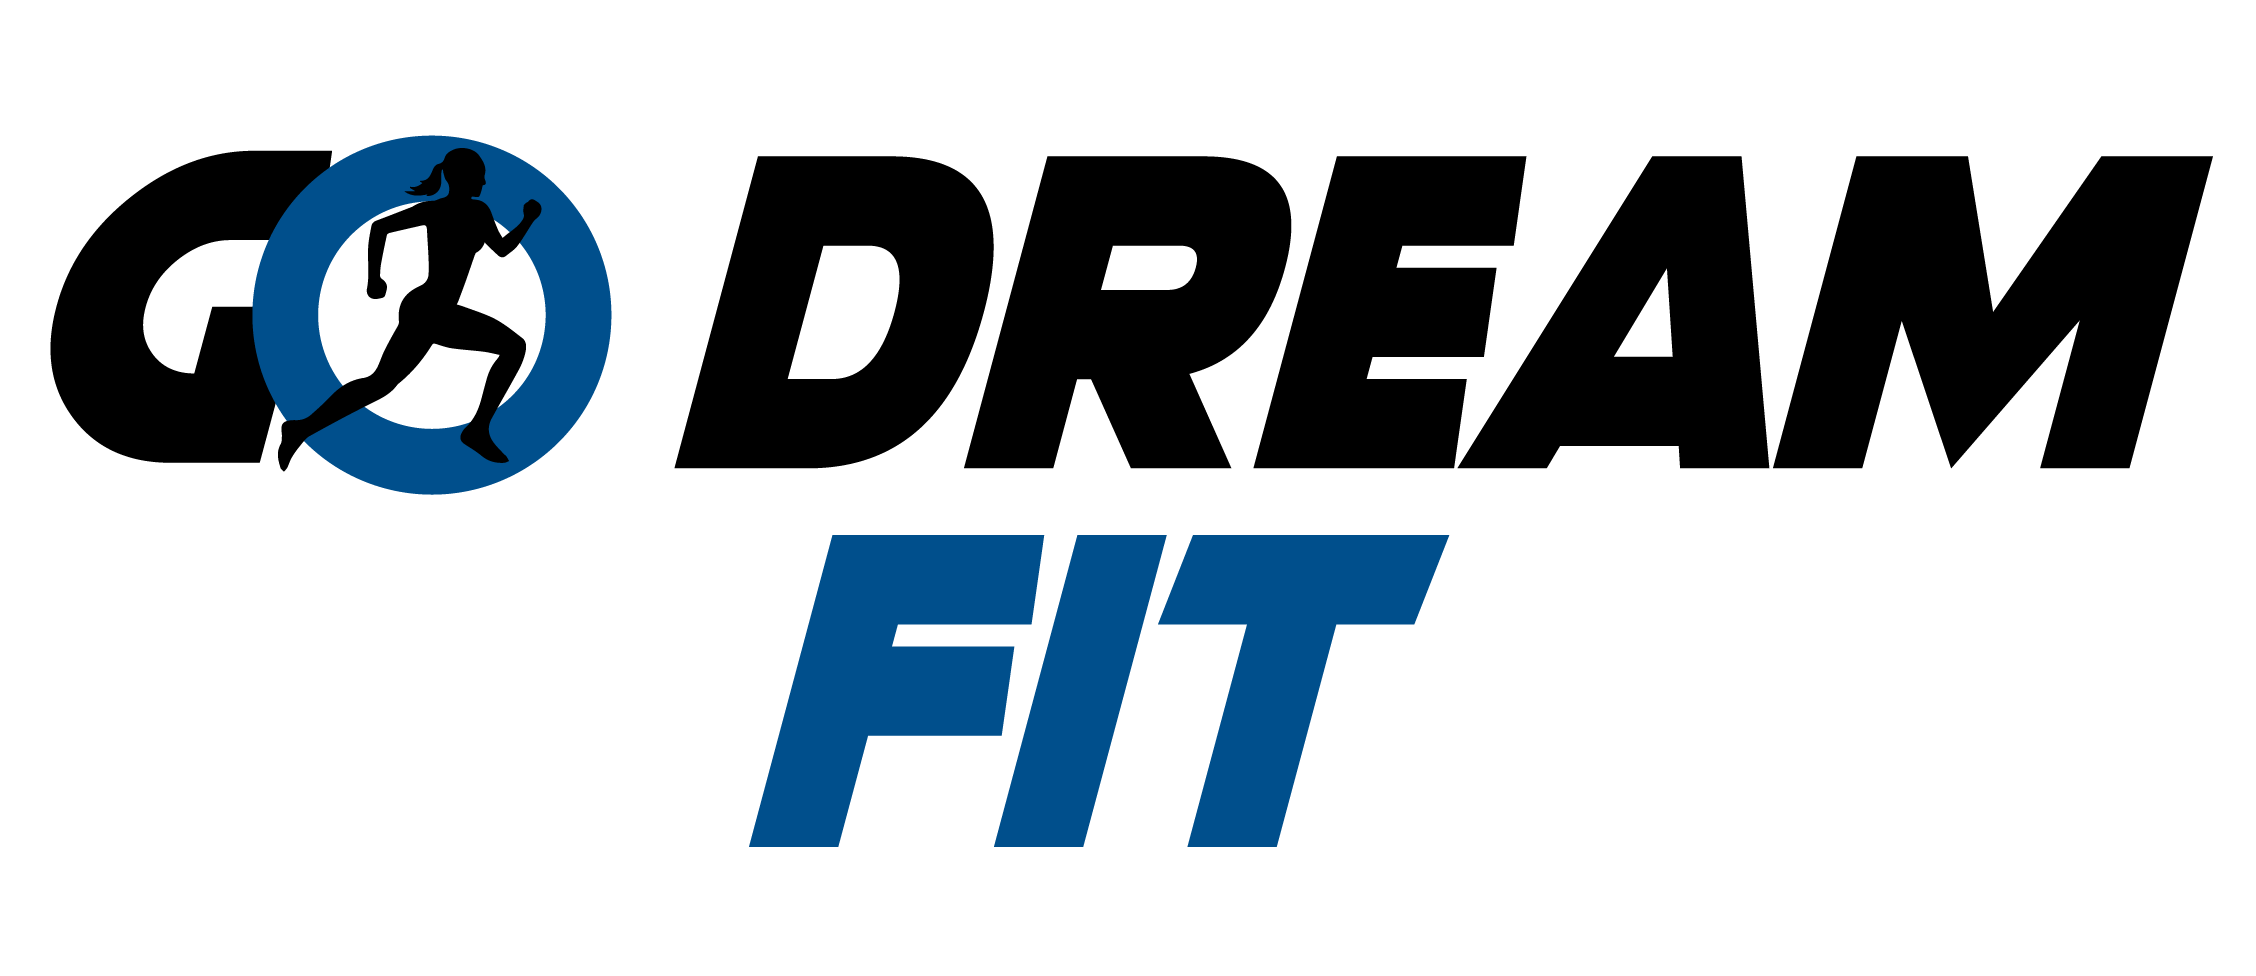 Go Dream Fit Mesa de trabajo 1